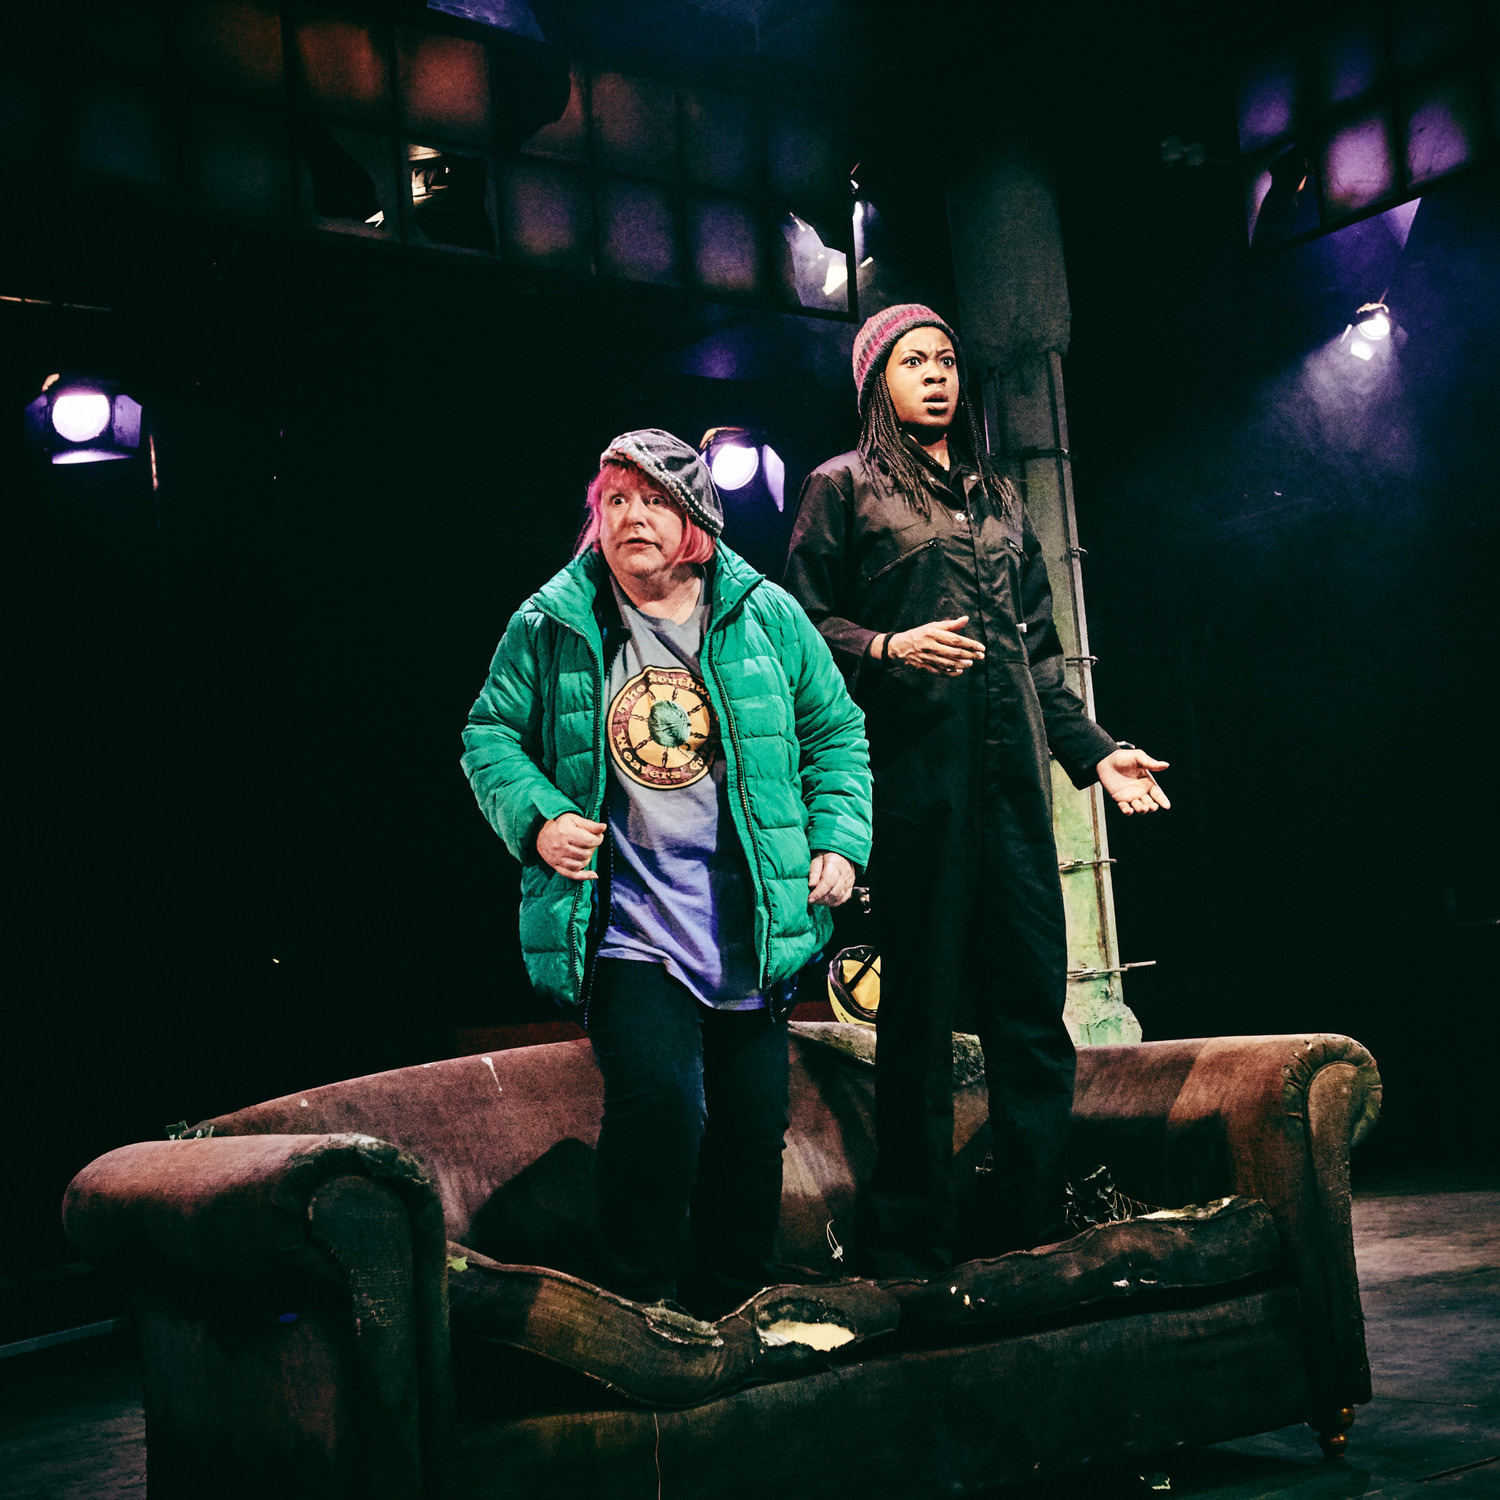 BWW Review: A MIDSUMMER NIGHT'S DREAM, Tobacco Factory Theatres